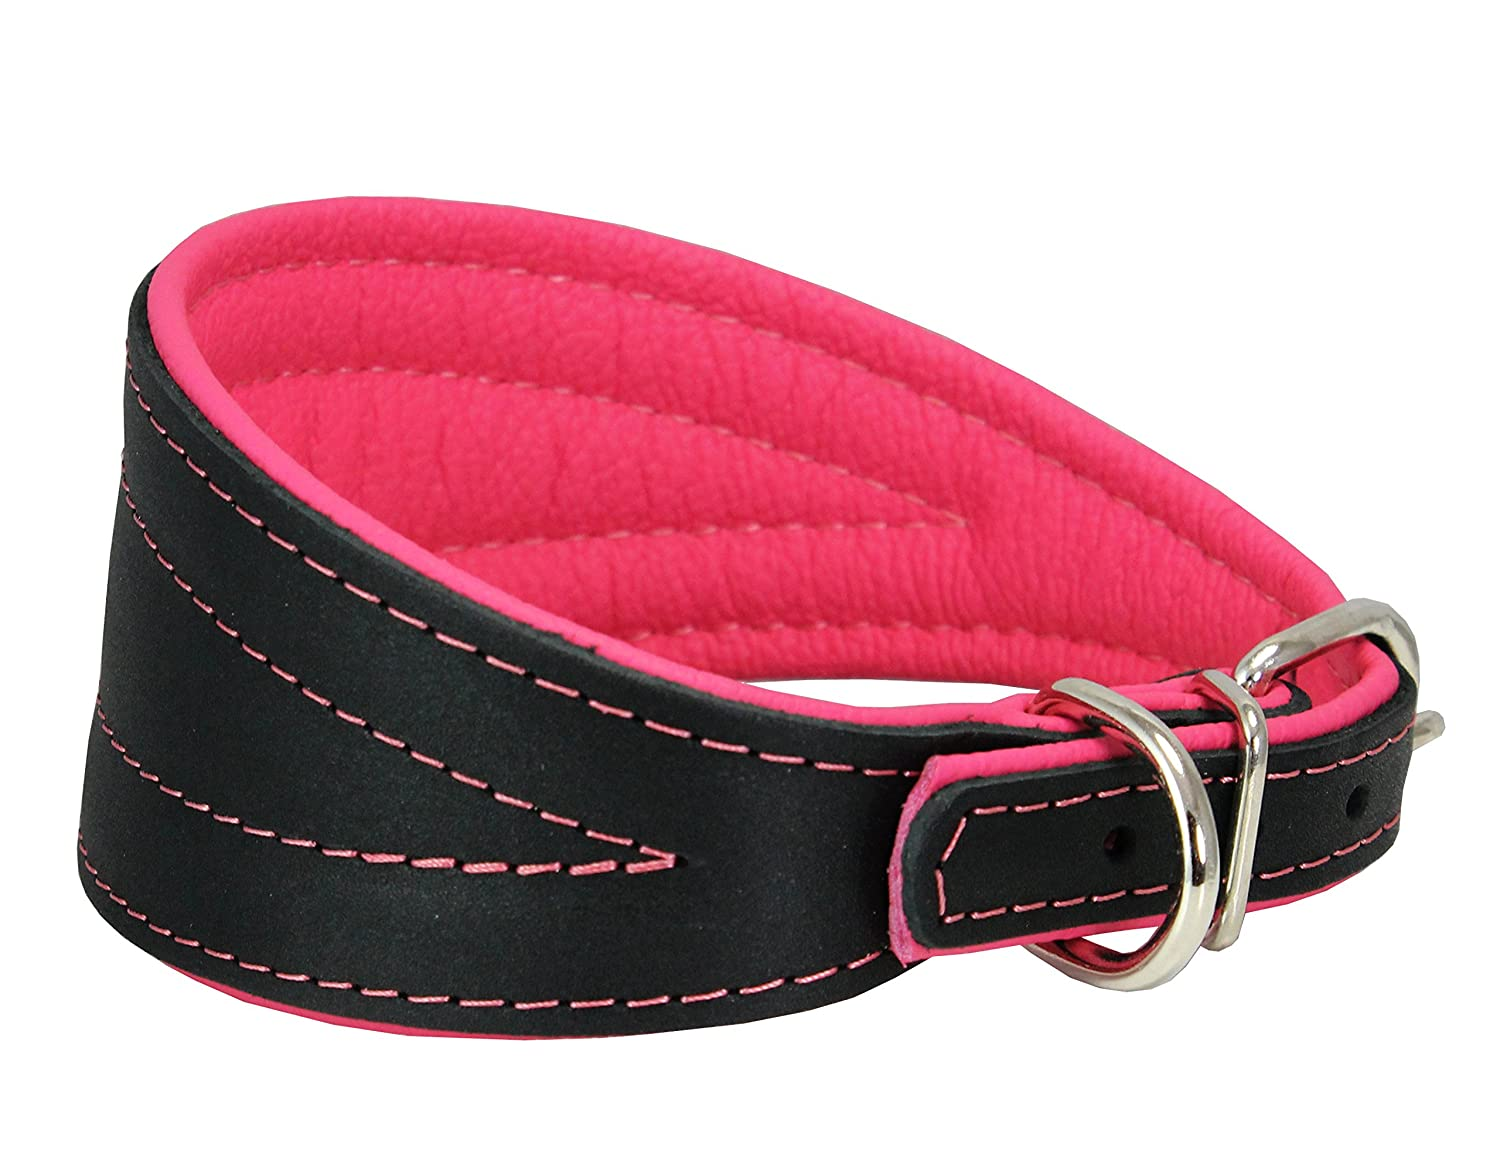 Pink 13.25\ Pink 13.25\ Real Leather Extra Wide Padded Tapered Dog Collar Glossy Black Greyhound Saluki Deerhound Lurcher Whippet Dachshund (13.25 -15.25  Neck; 2.5  Wide, Pink)